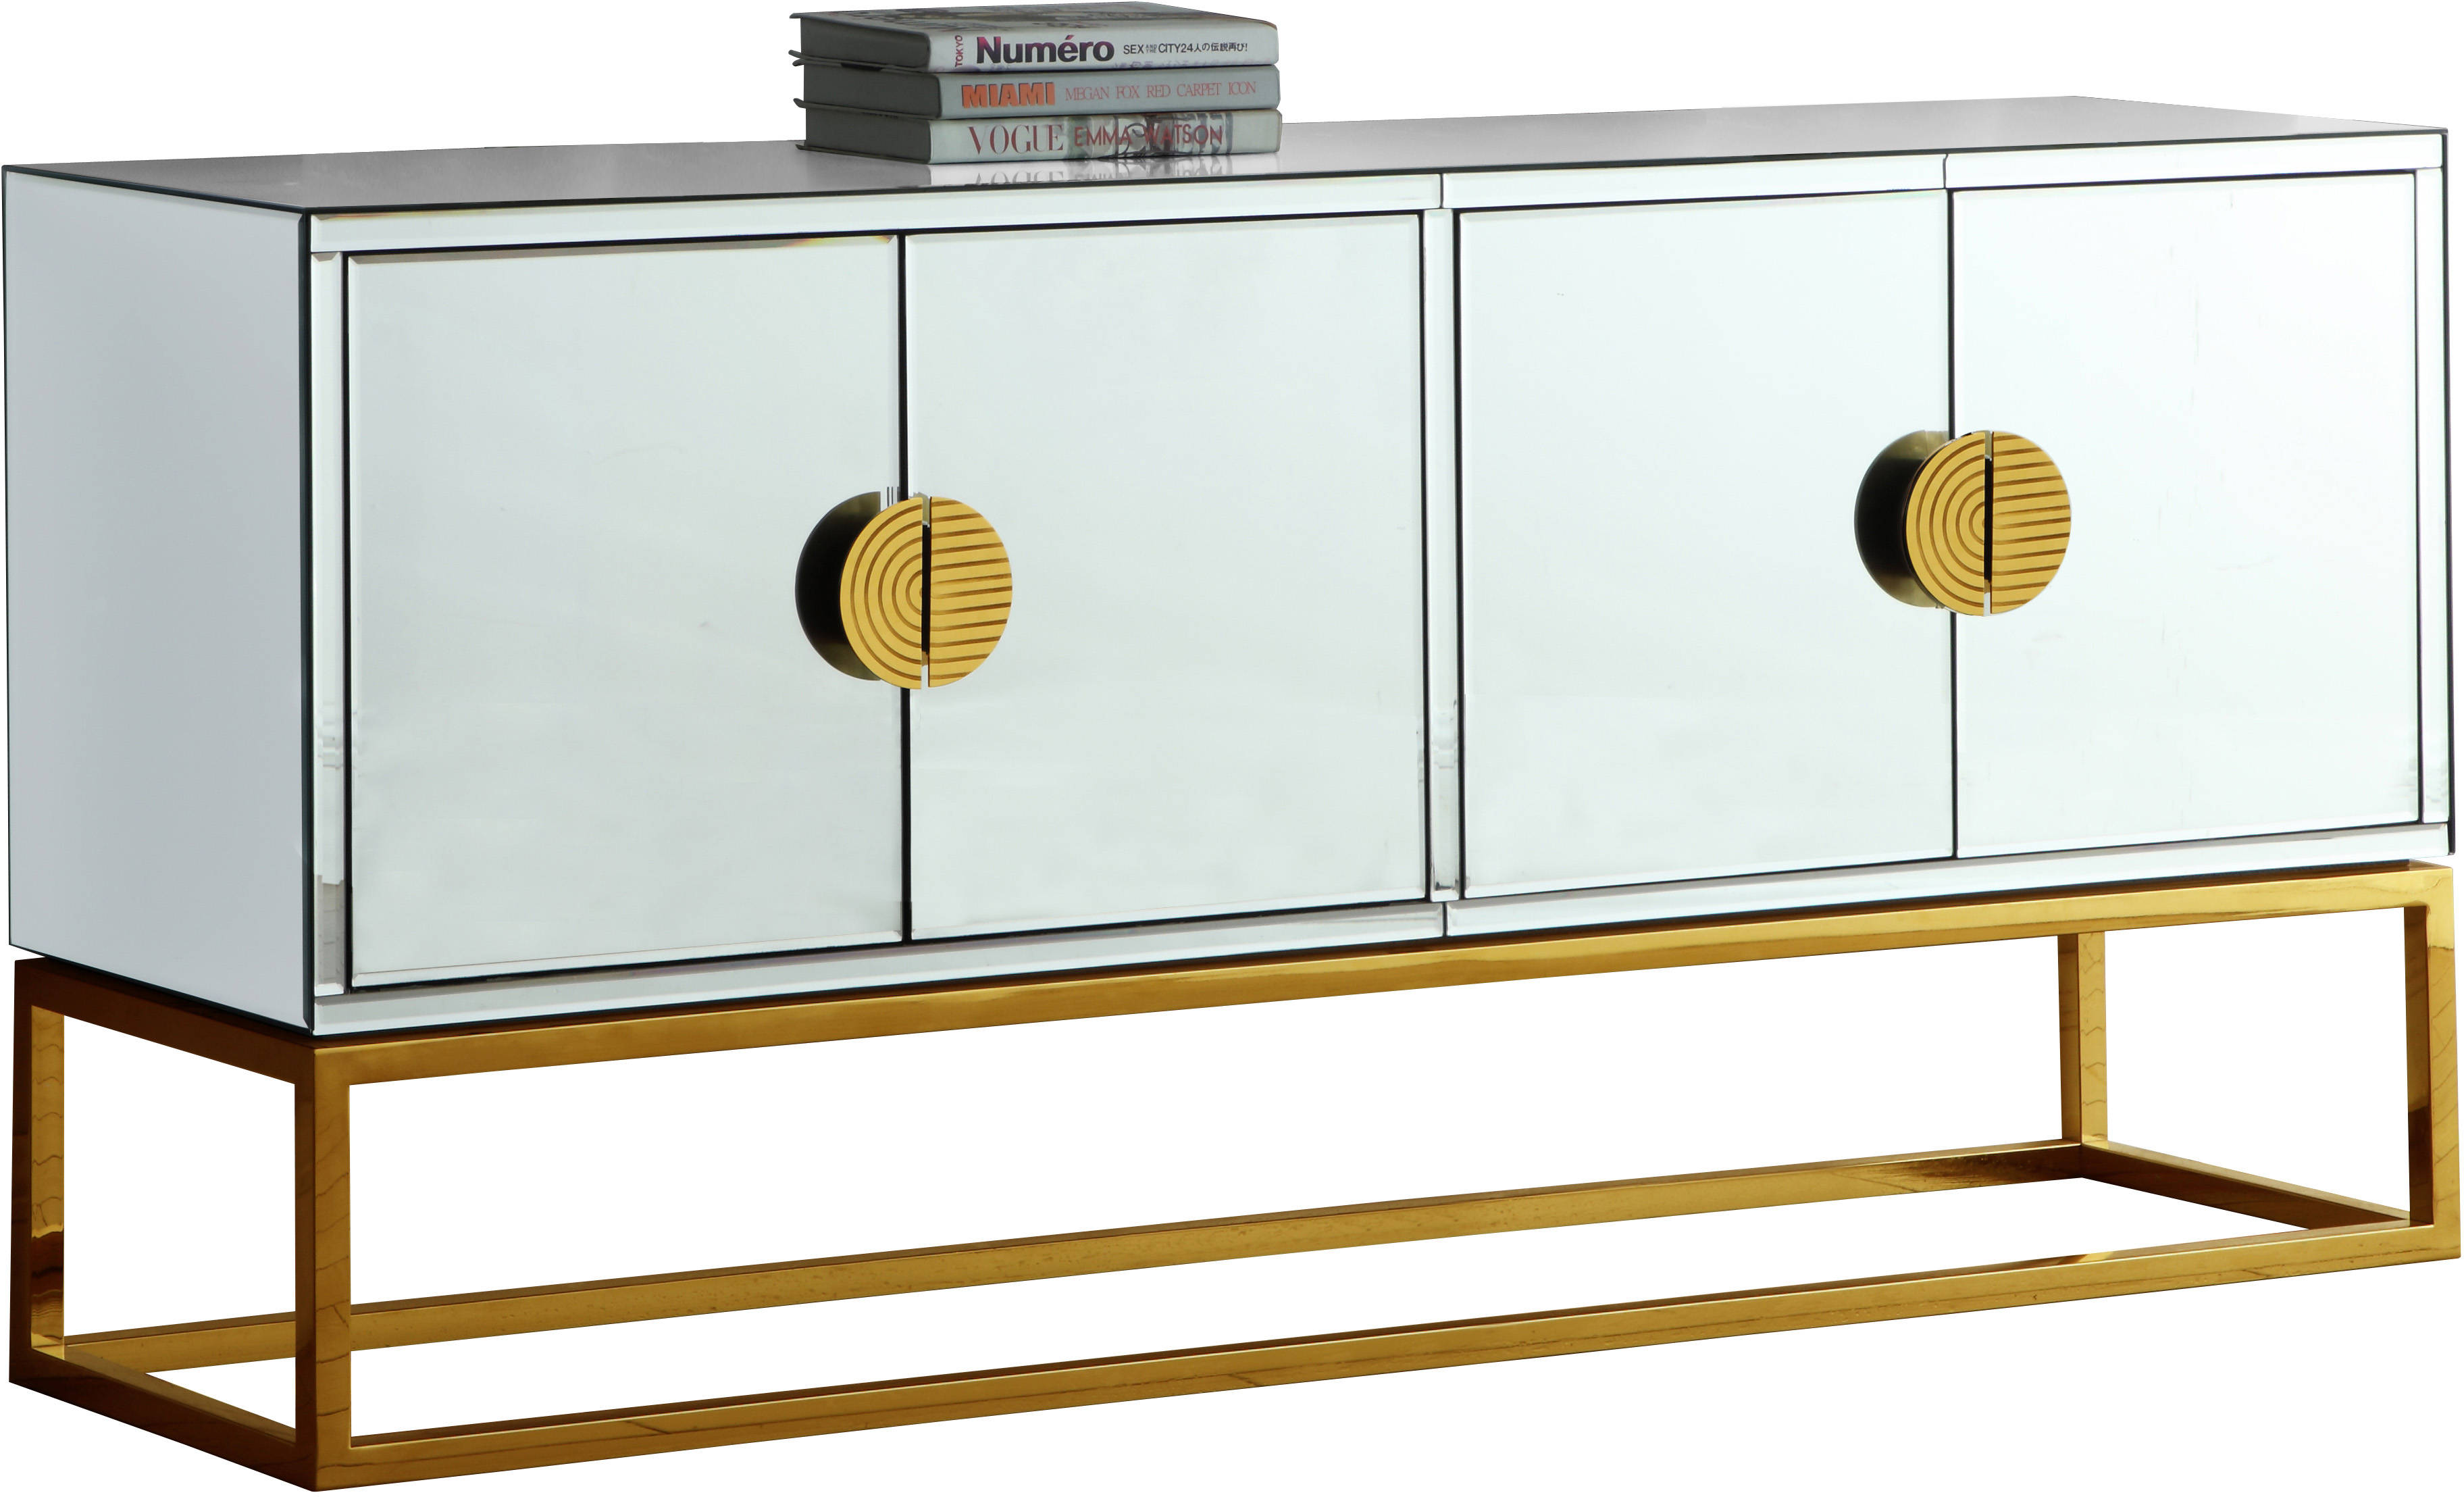 Meridian Furniture Marbella Gold Sideboard Buffet The Classy Home